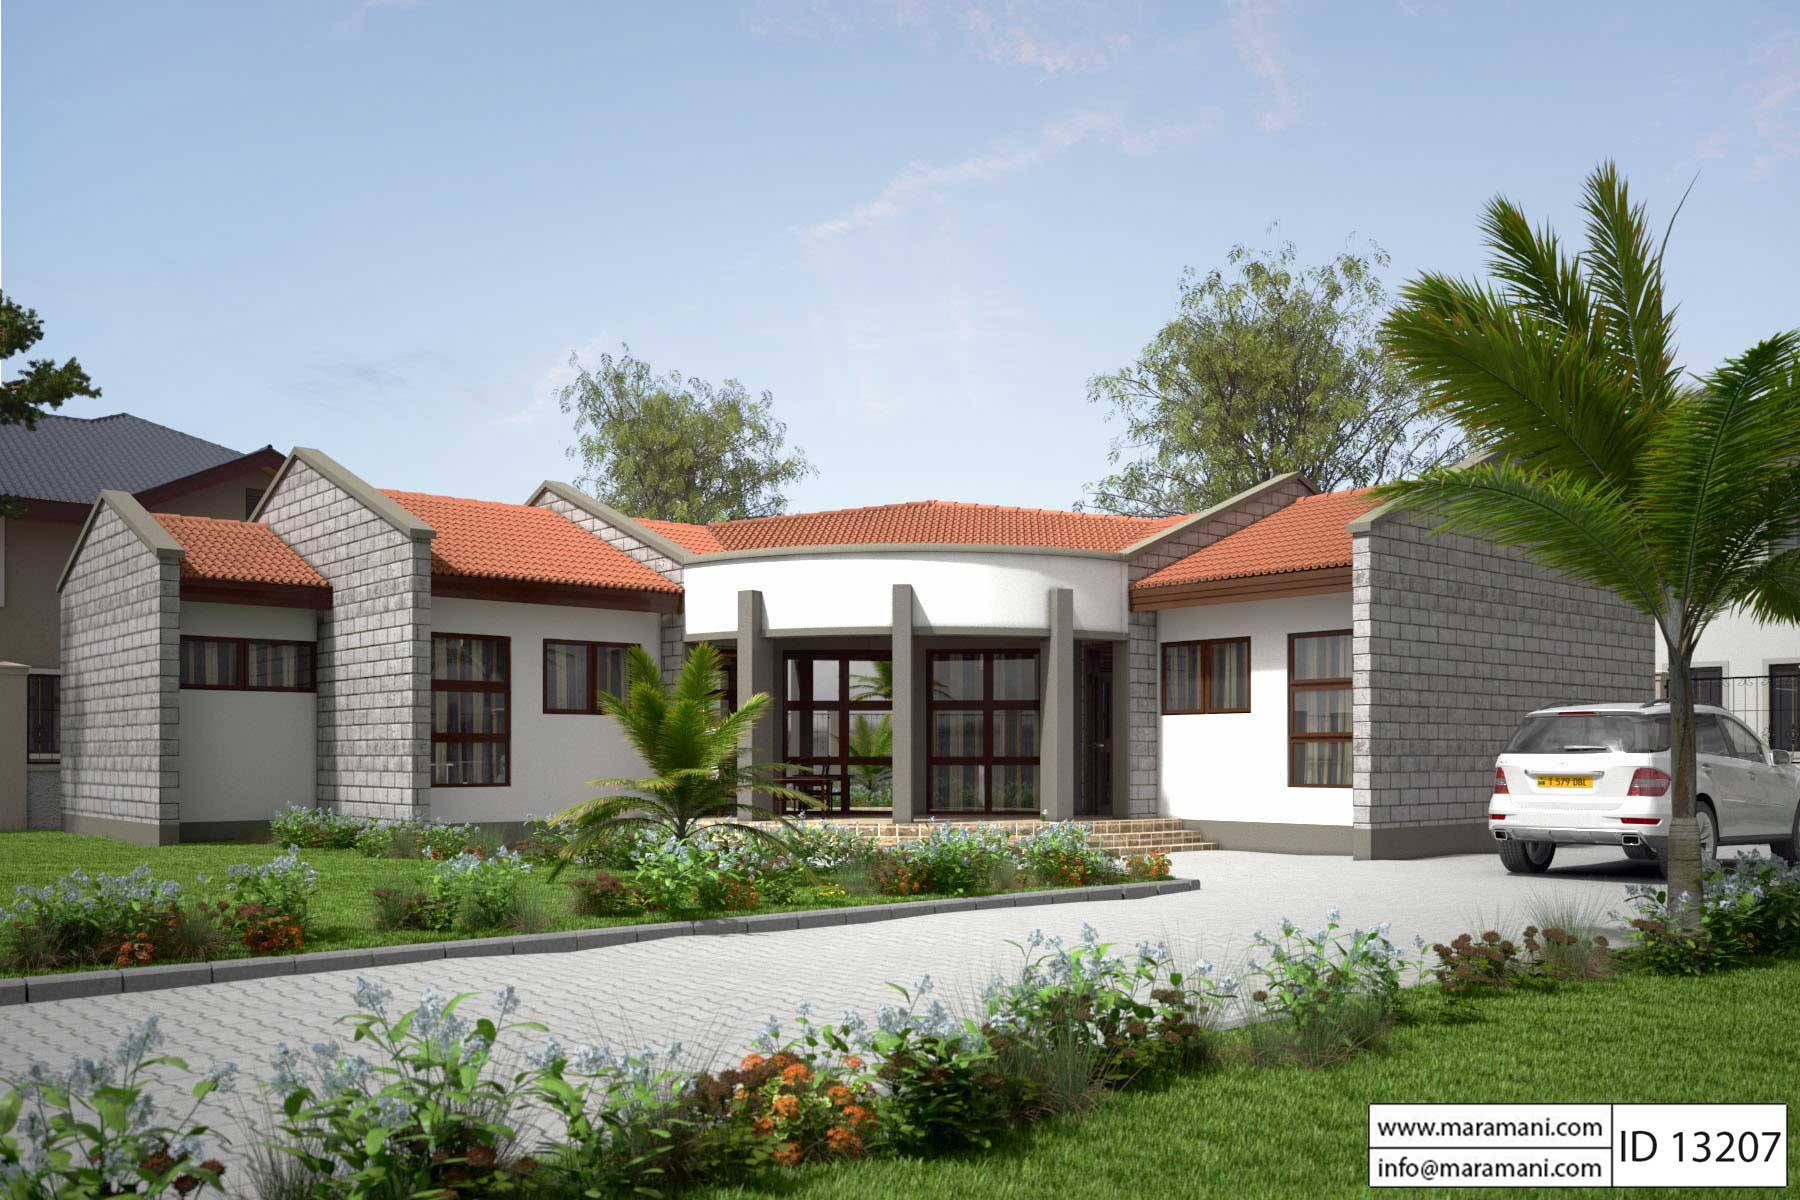 Low budget modern 3 bedroom house design id 13207 for Single story 4 bedroom modern house plans